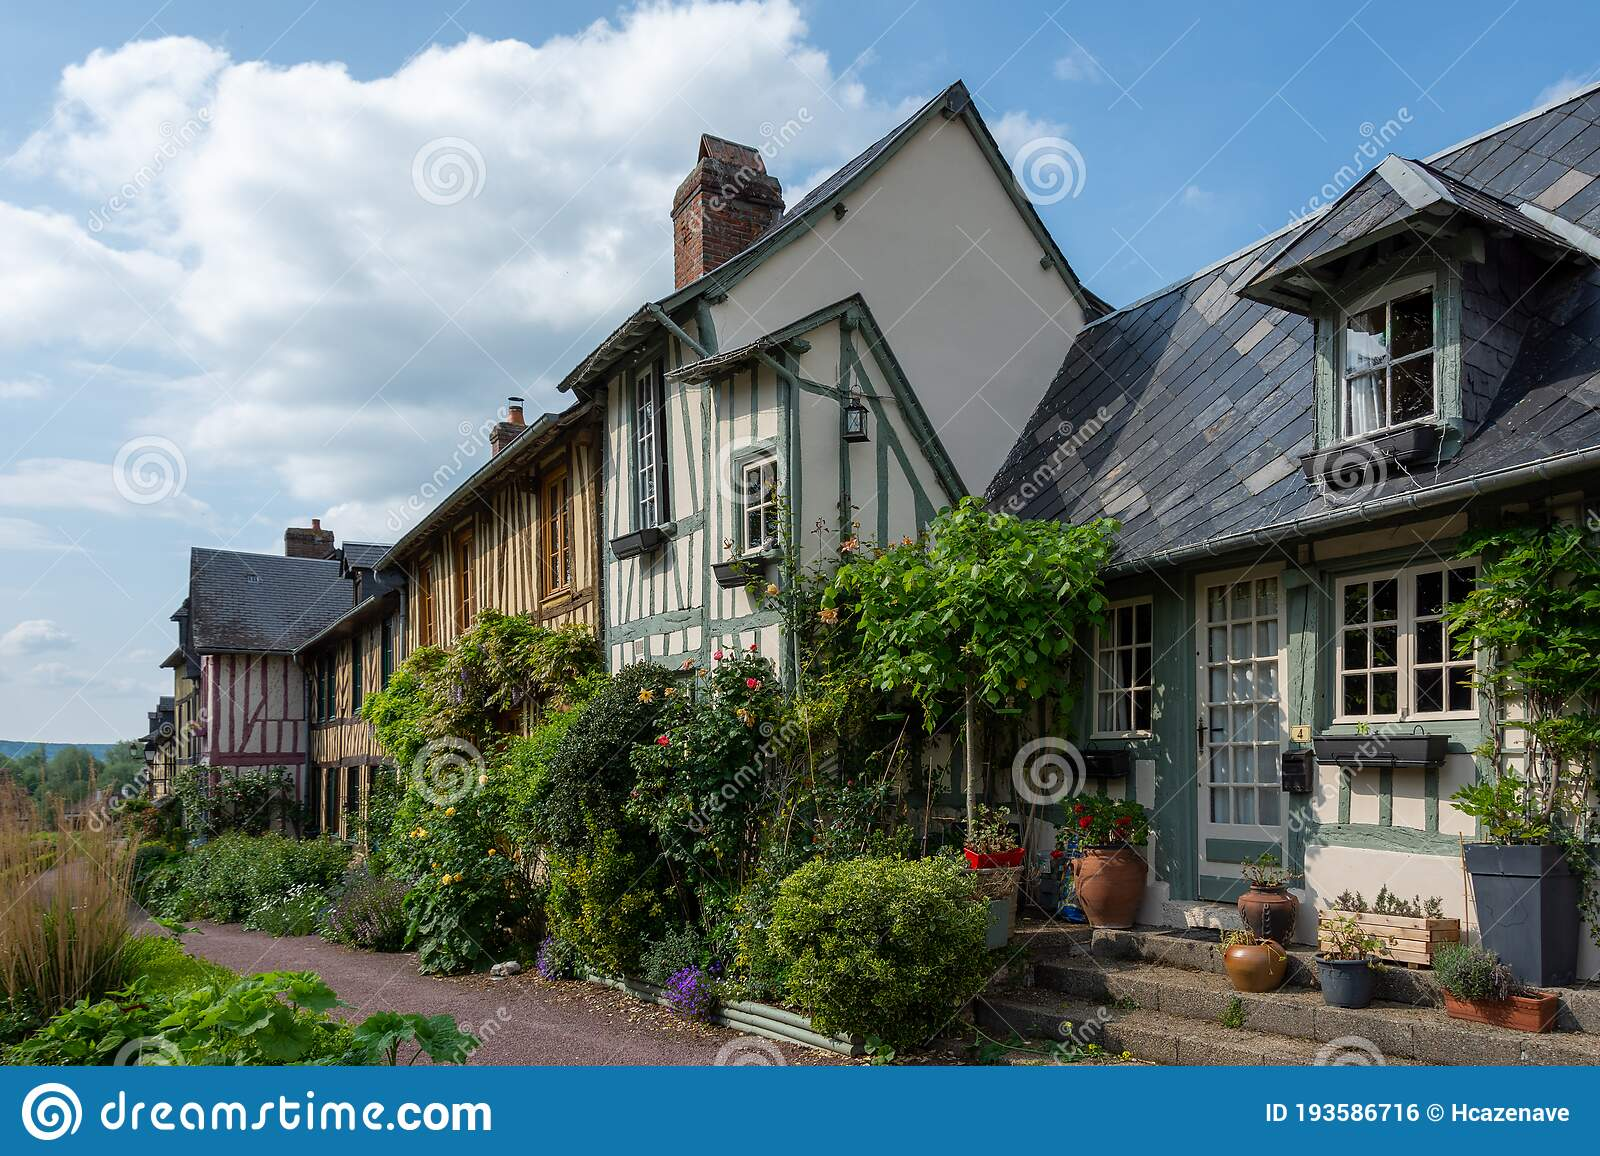 Old Half Timbered Houses Typical French Normandy Style Stock Photo Image Of Beautiful Countryside 193586716